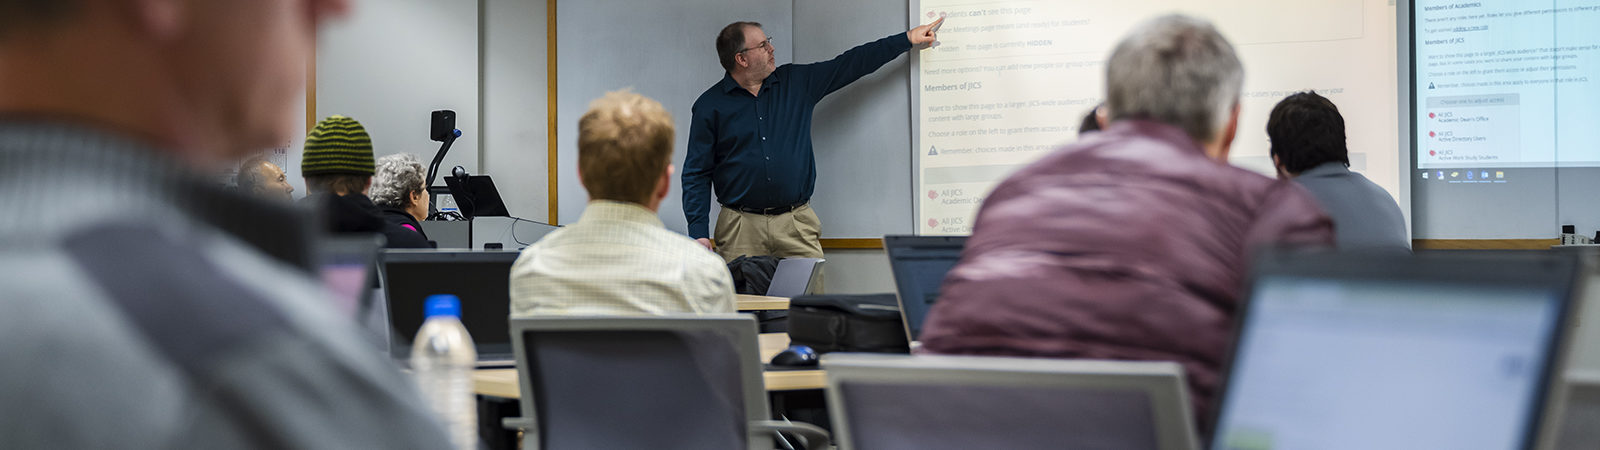 Faculty receive training for providing online instruction to students.